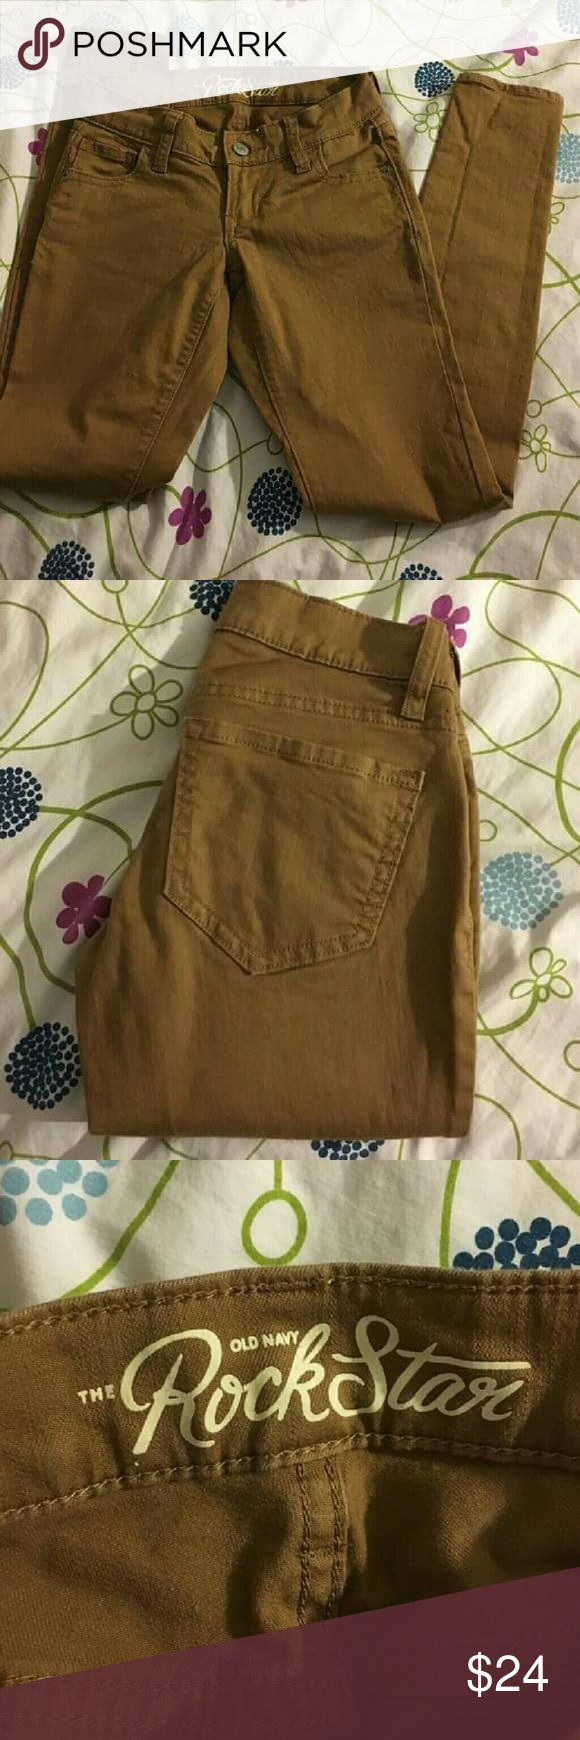 🌞trade or sell🌞 Old Navy tan skinny jeans Size 0 petite - Old Navy sizes run small. These are great condition, no flaws, they're just too small for me. I ordered them from another Posher .  🙅no modeling  🤔will consider trades (I need pants size 2p) - will take measurements if needed! Old Navy Jeans Skinny